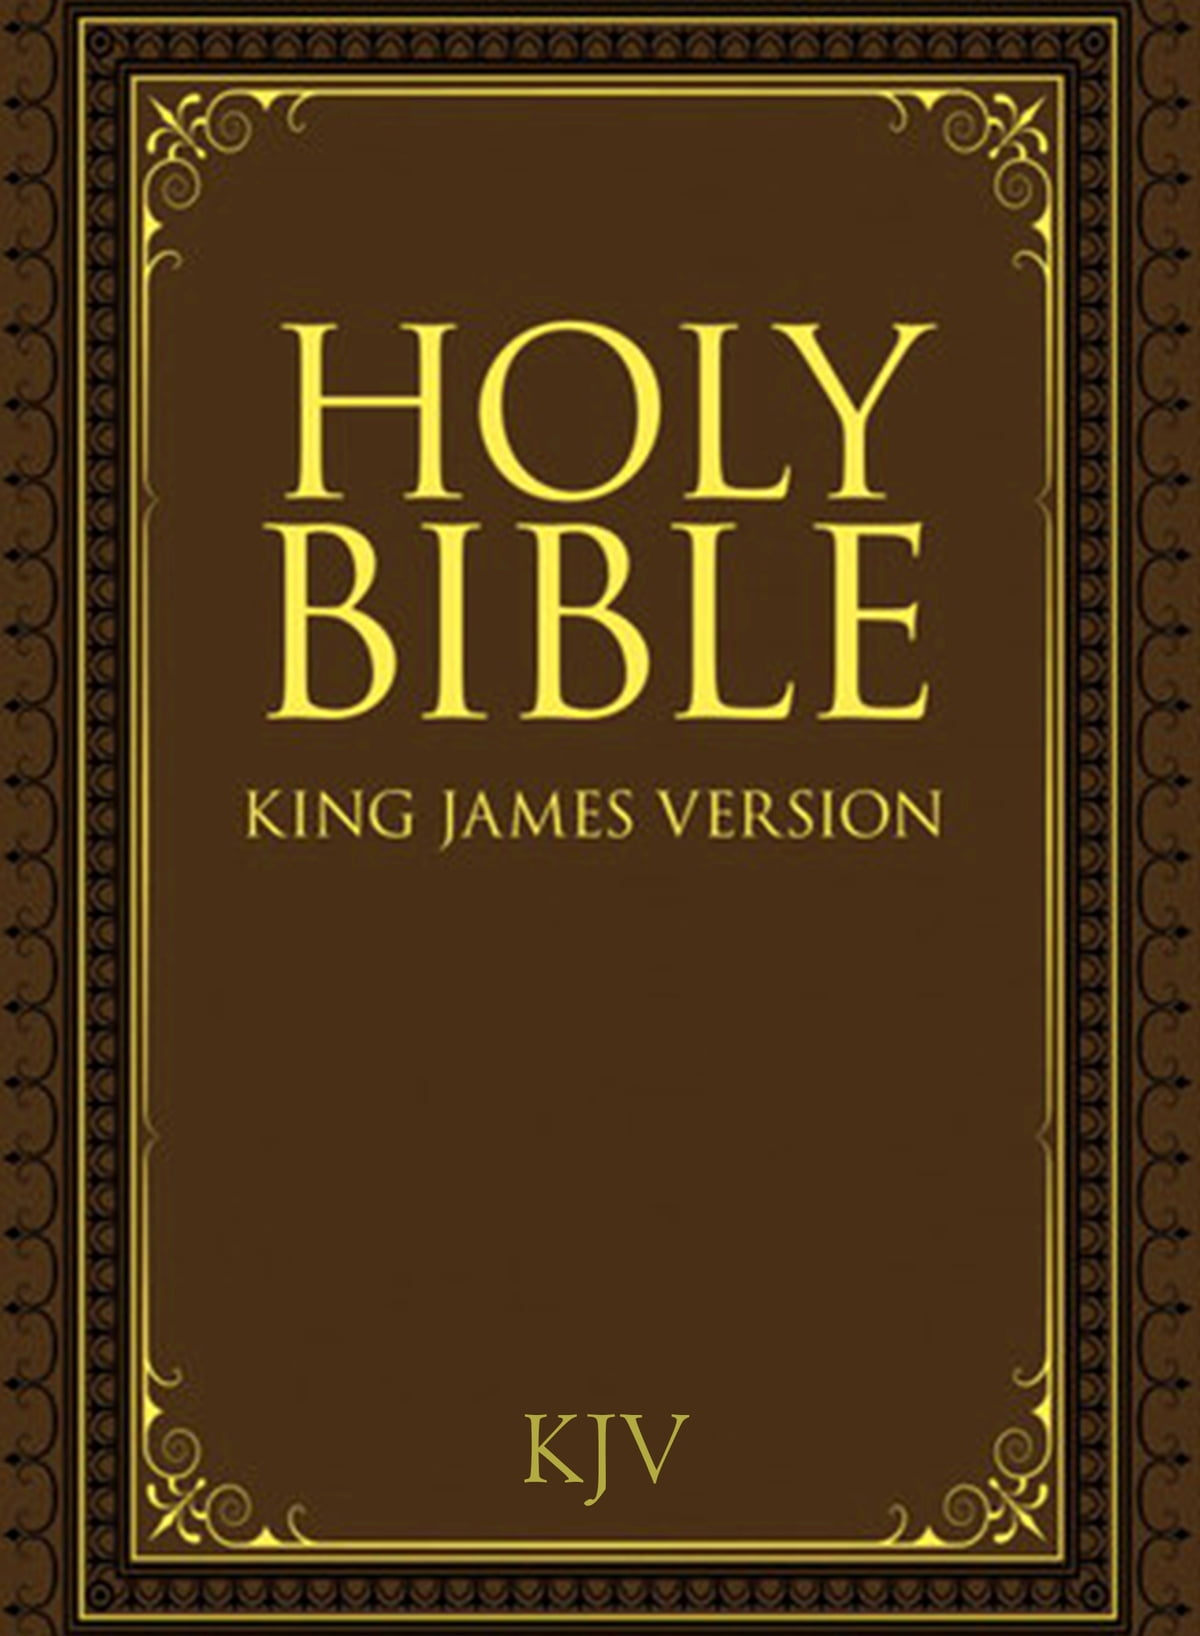 Bible King James Version Authorized Kjv Best Bible